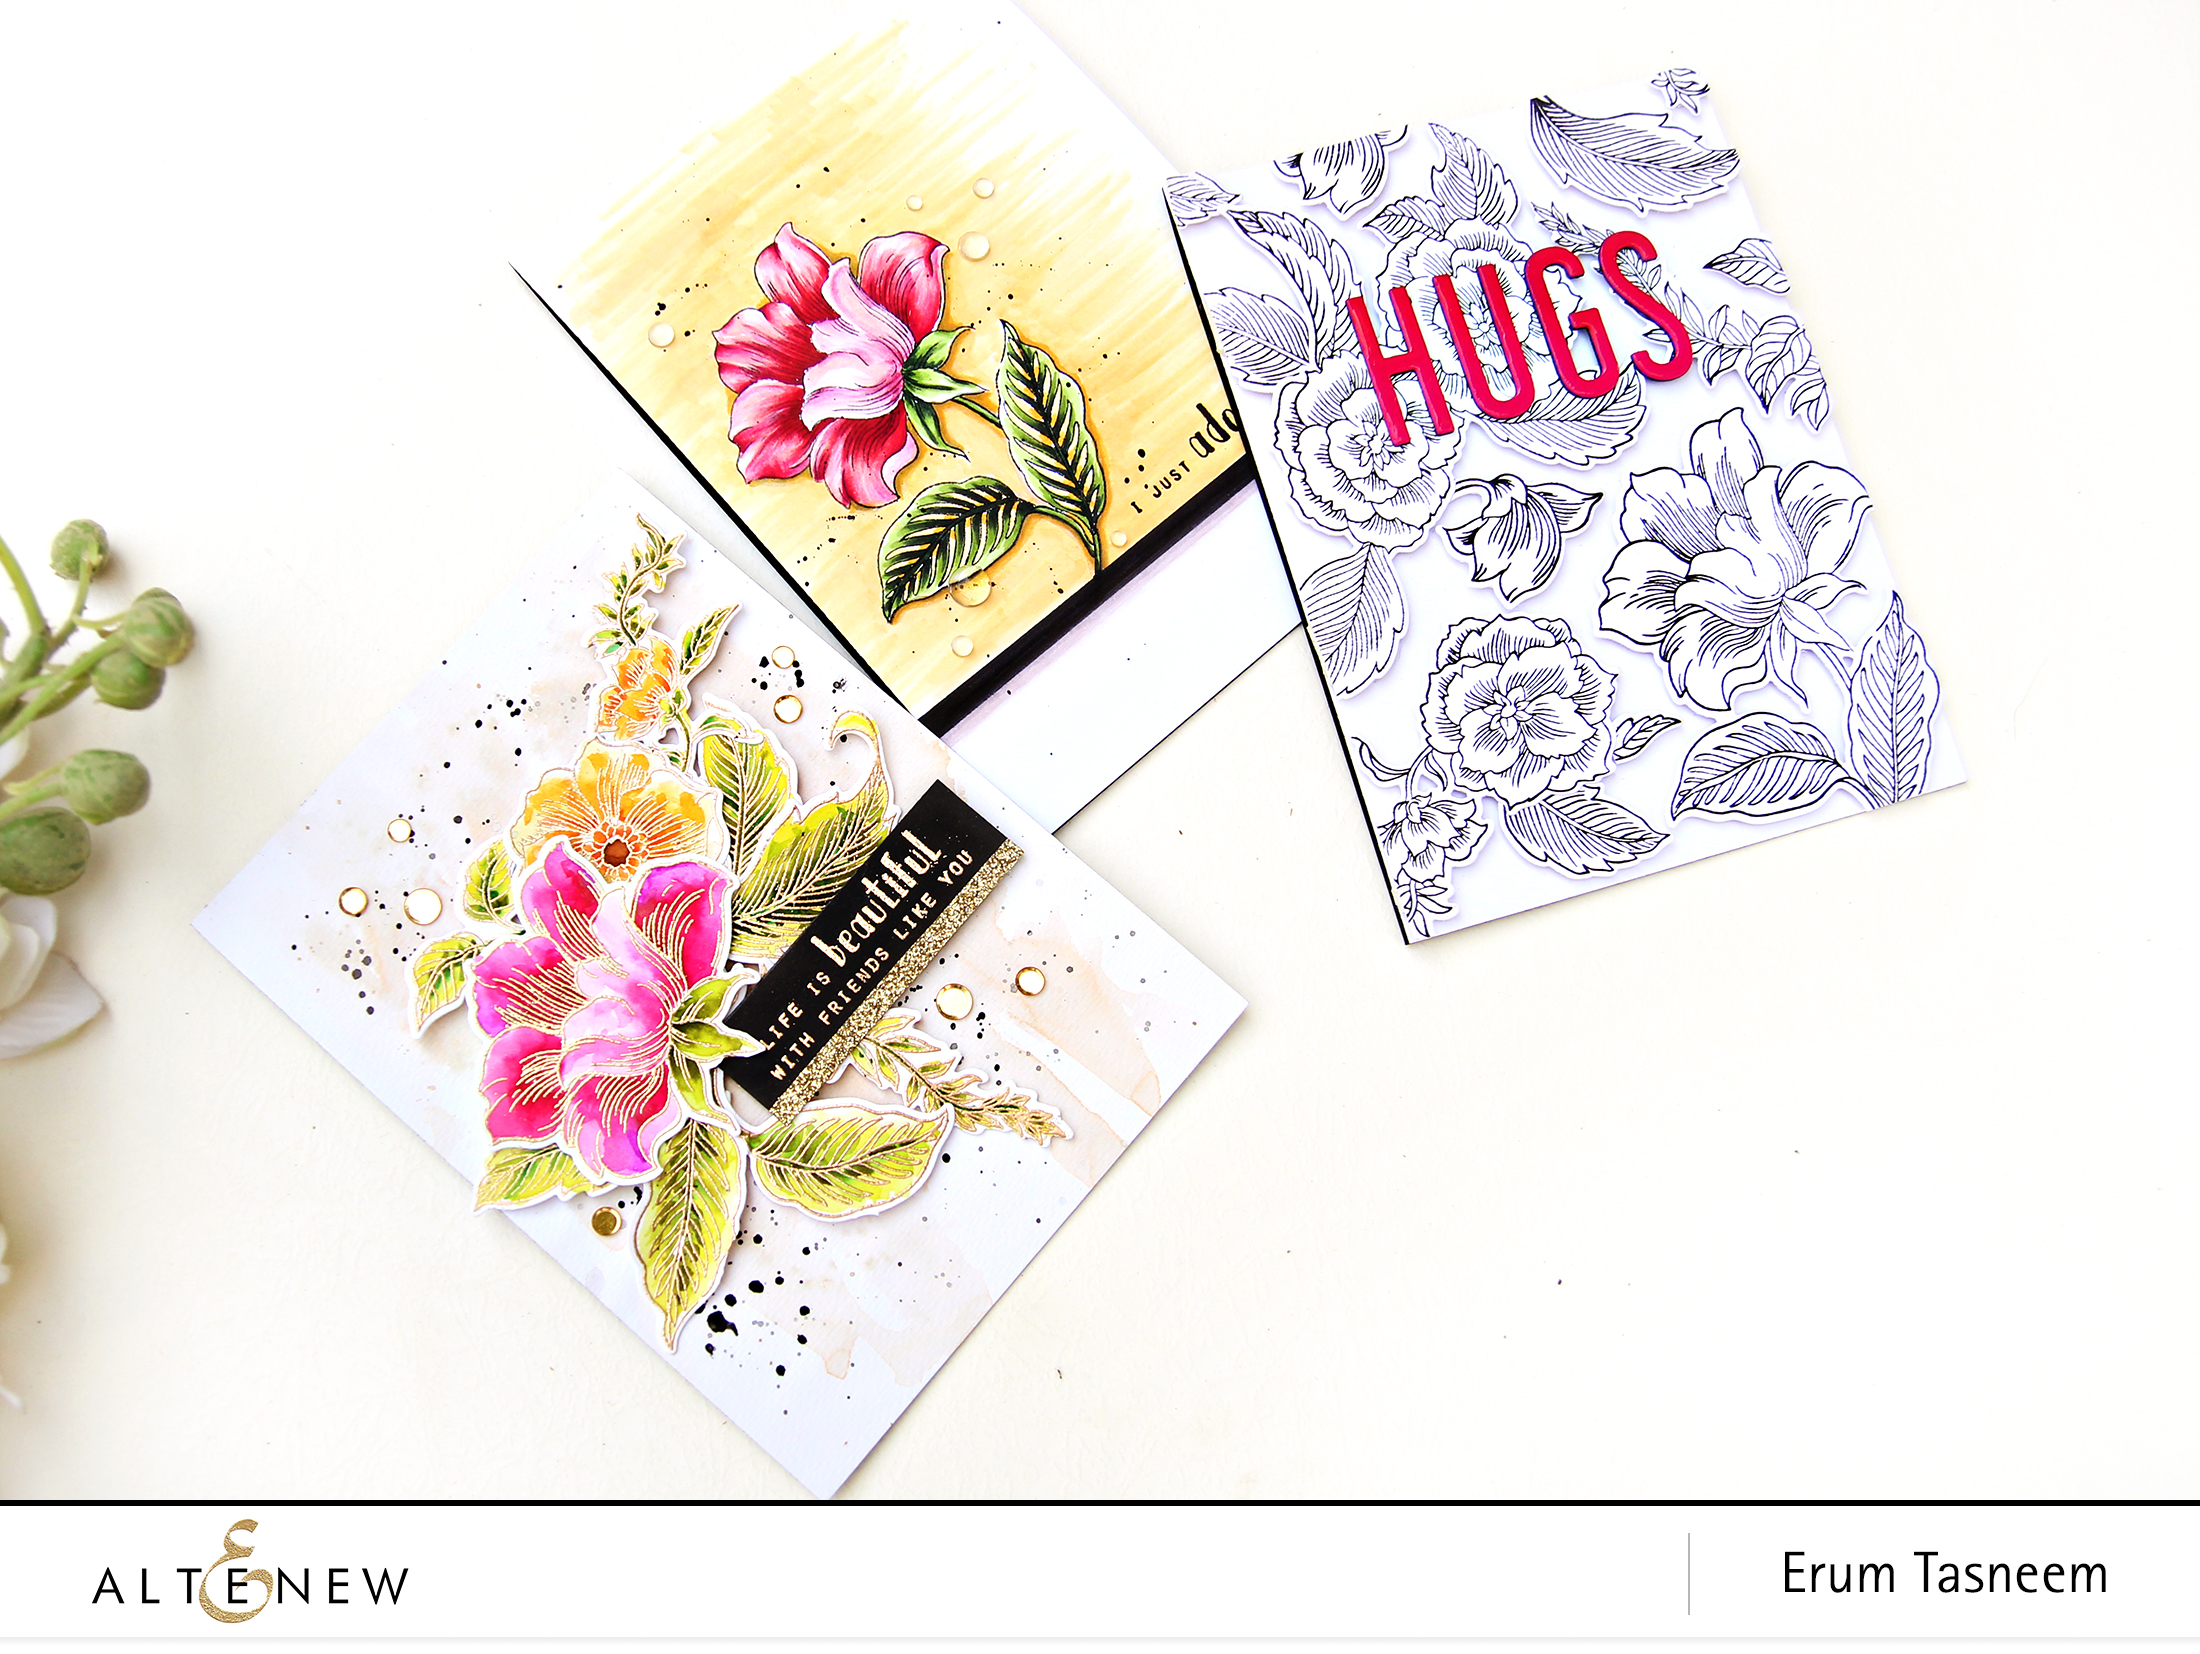 Altenew Stamp Focus: Engraved Flowers Stamp Set | Erum Tasneem | @pr0digy0